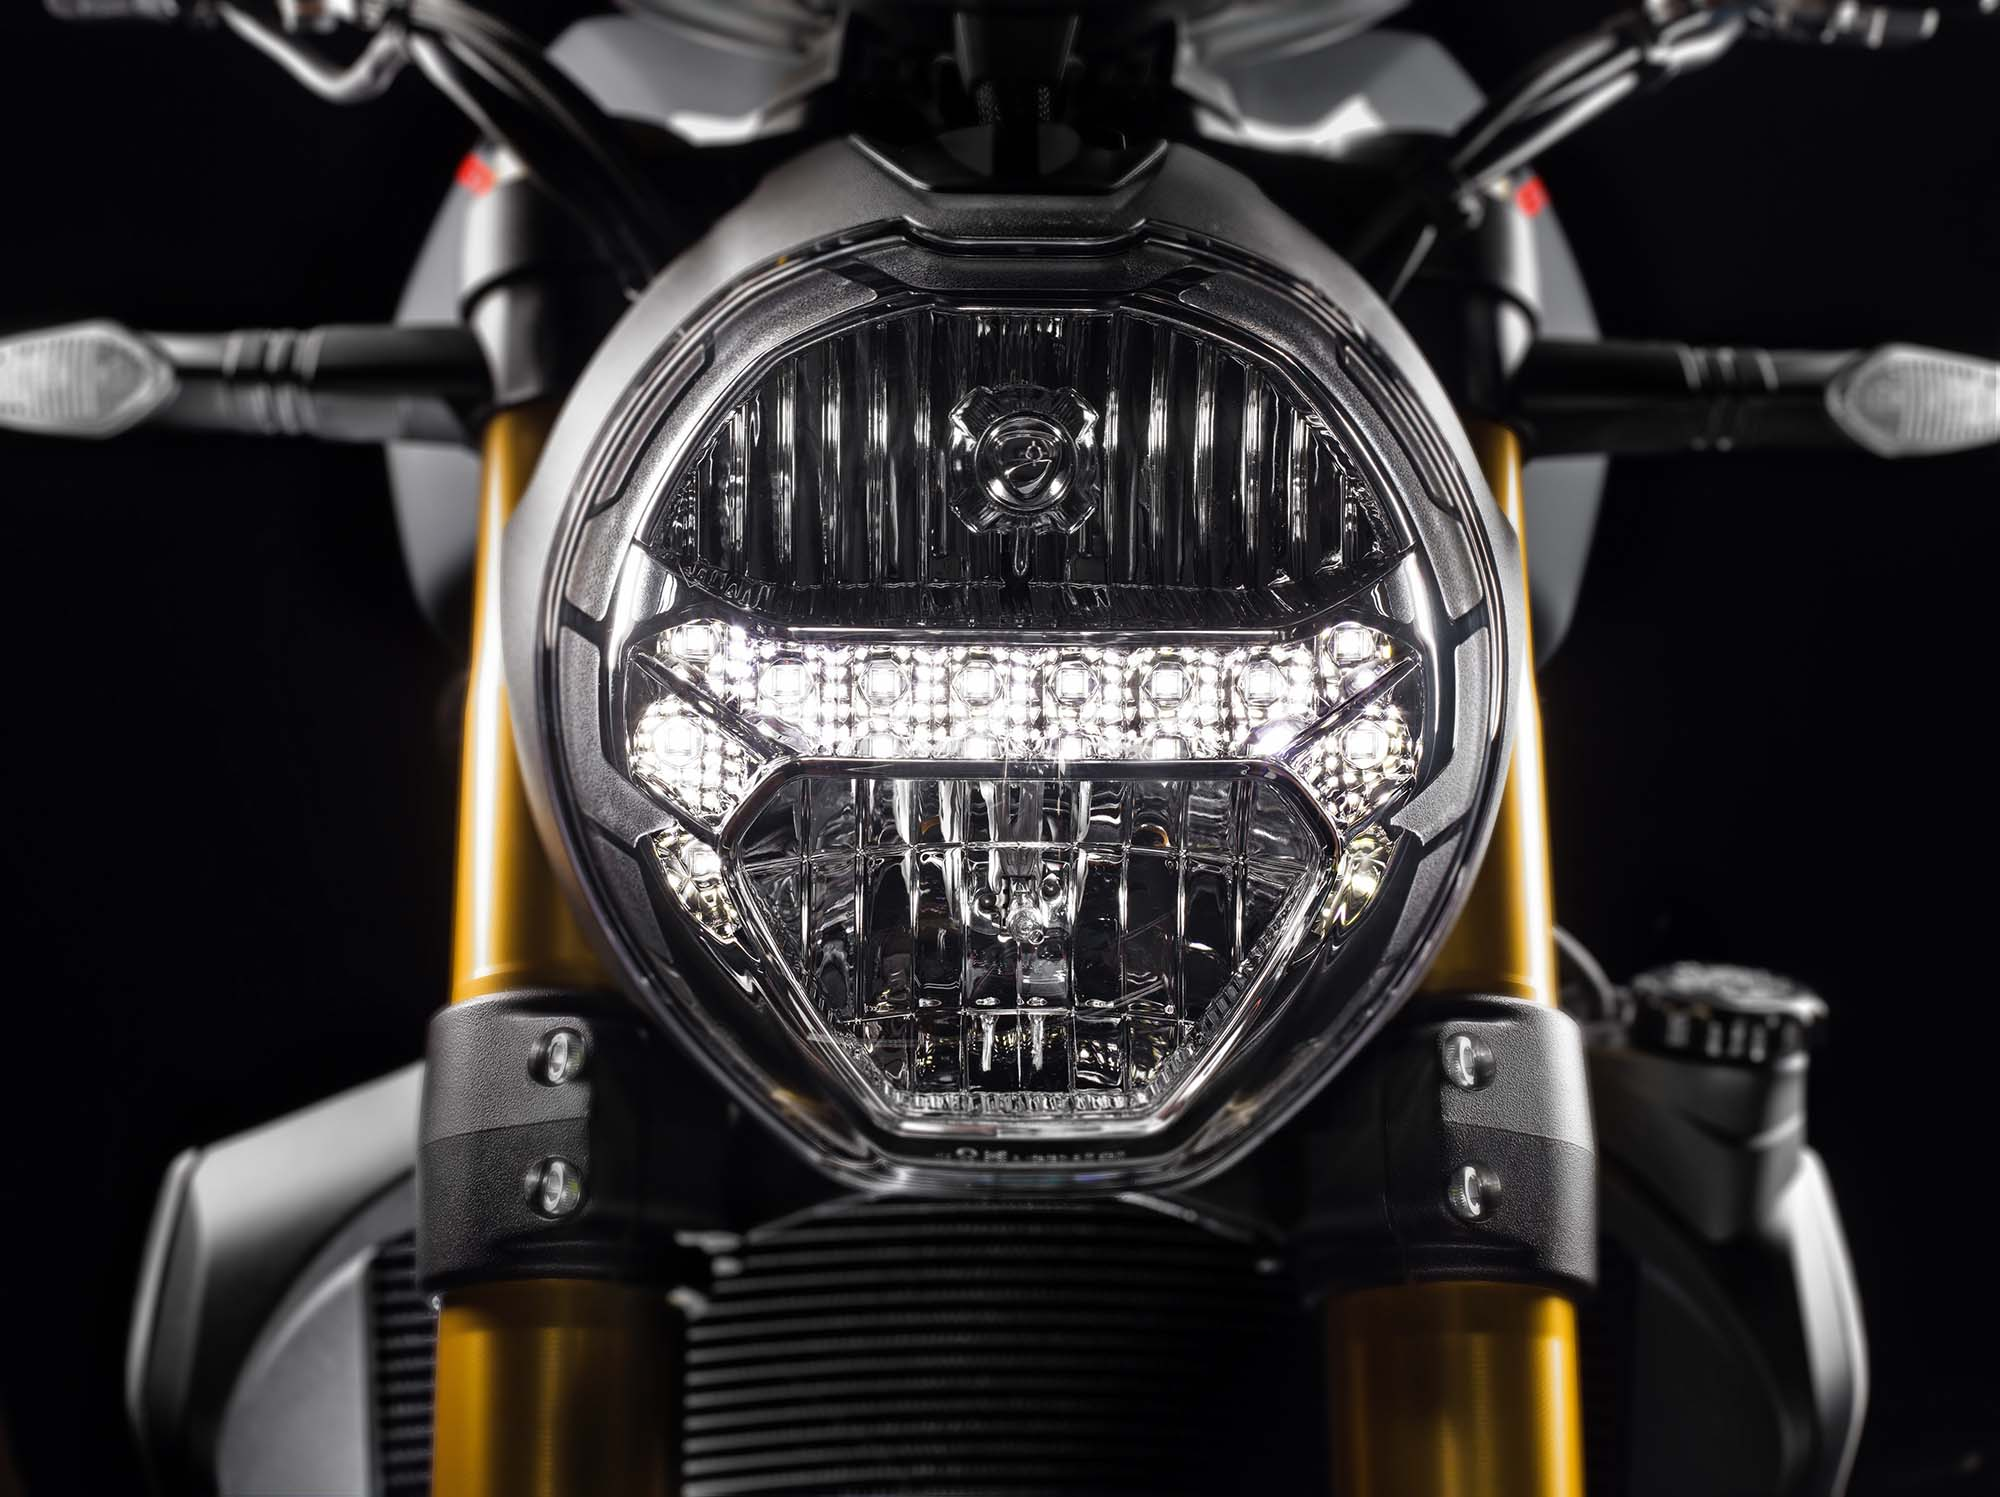 triumph bonneville wiring diagram ducati monster 1200 gets a bevy of updates for 2017  ducati monster 1200 gets a bevy of updates for 2017